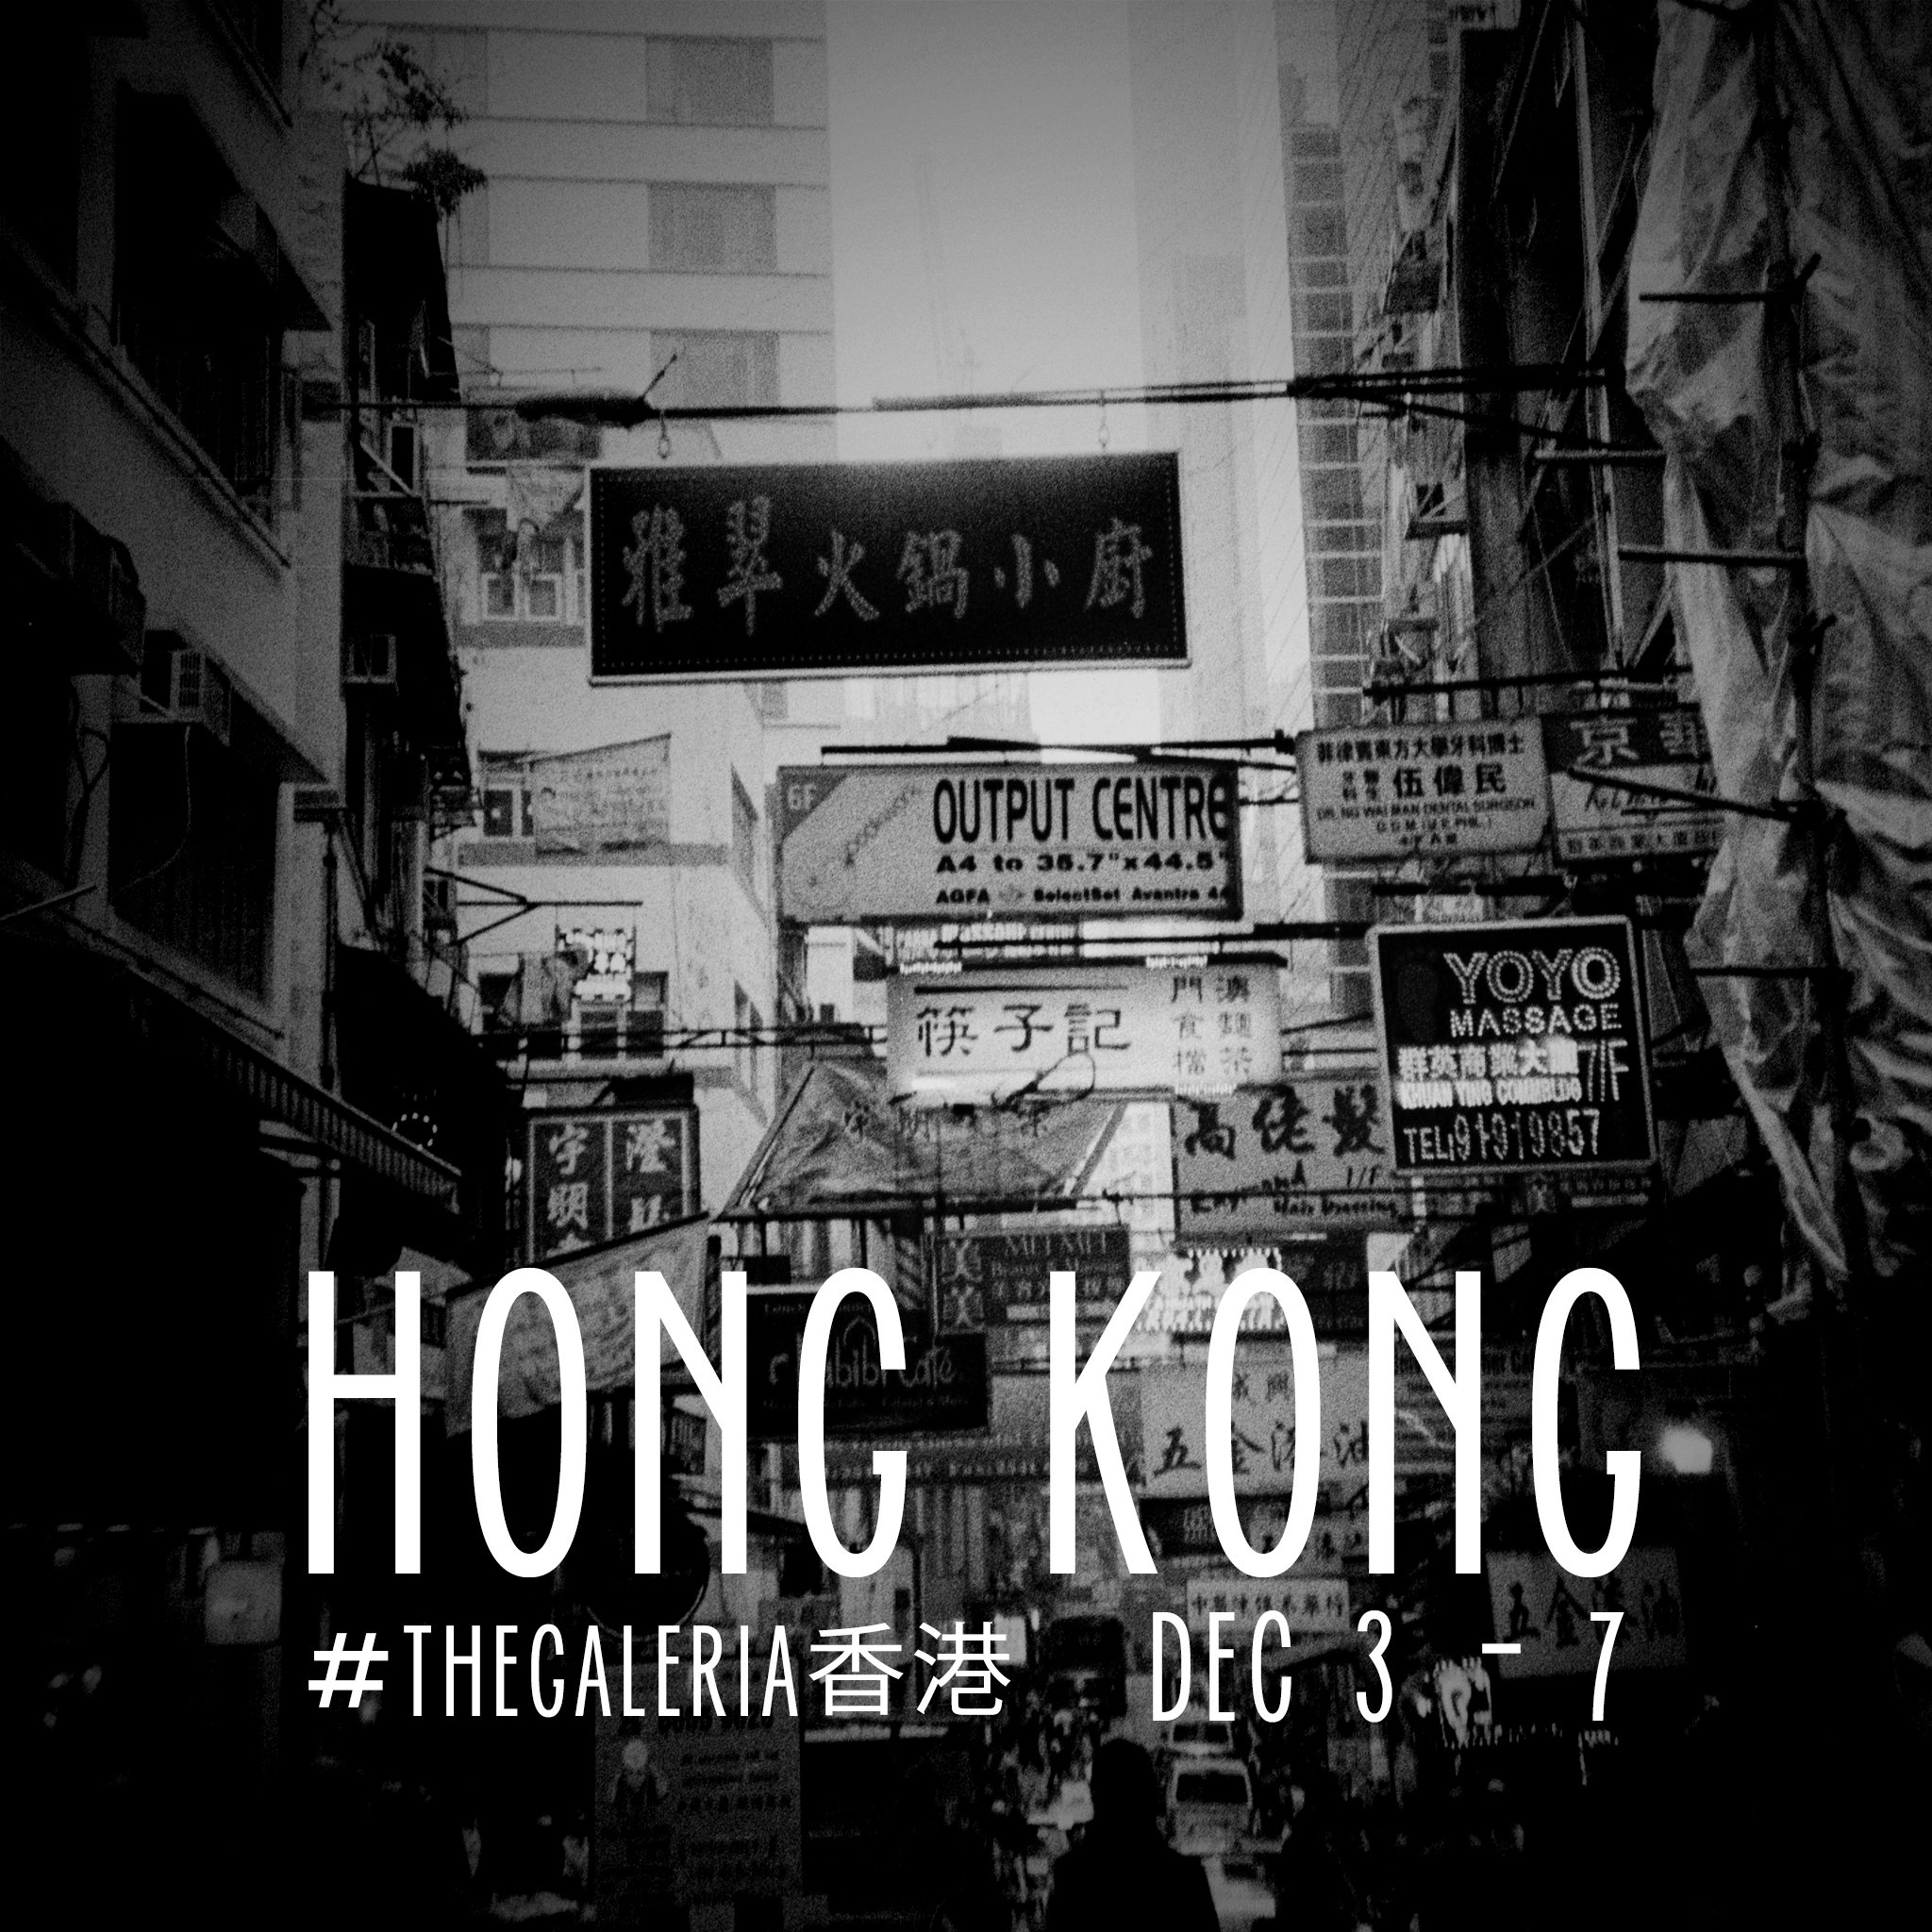 Film Photographer Brian Ho will be travelling to Hong Kong from Dec 3 - 7